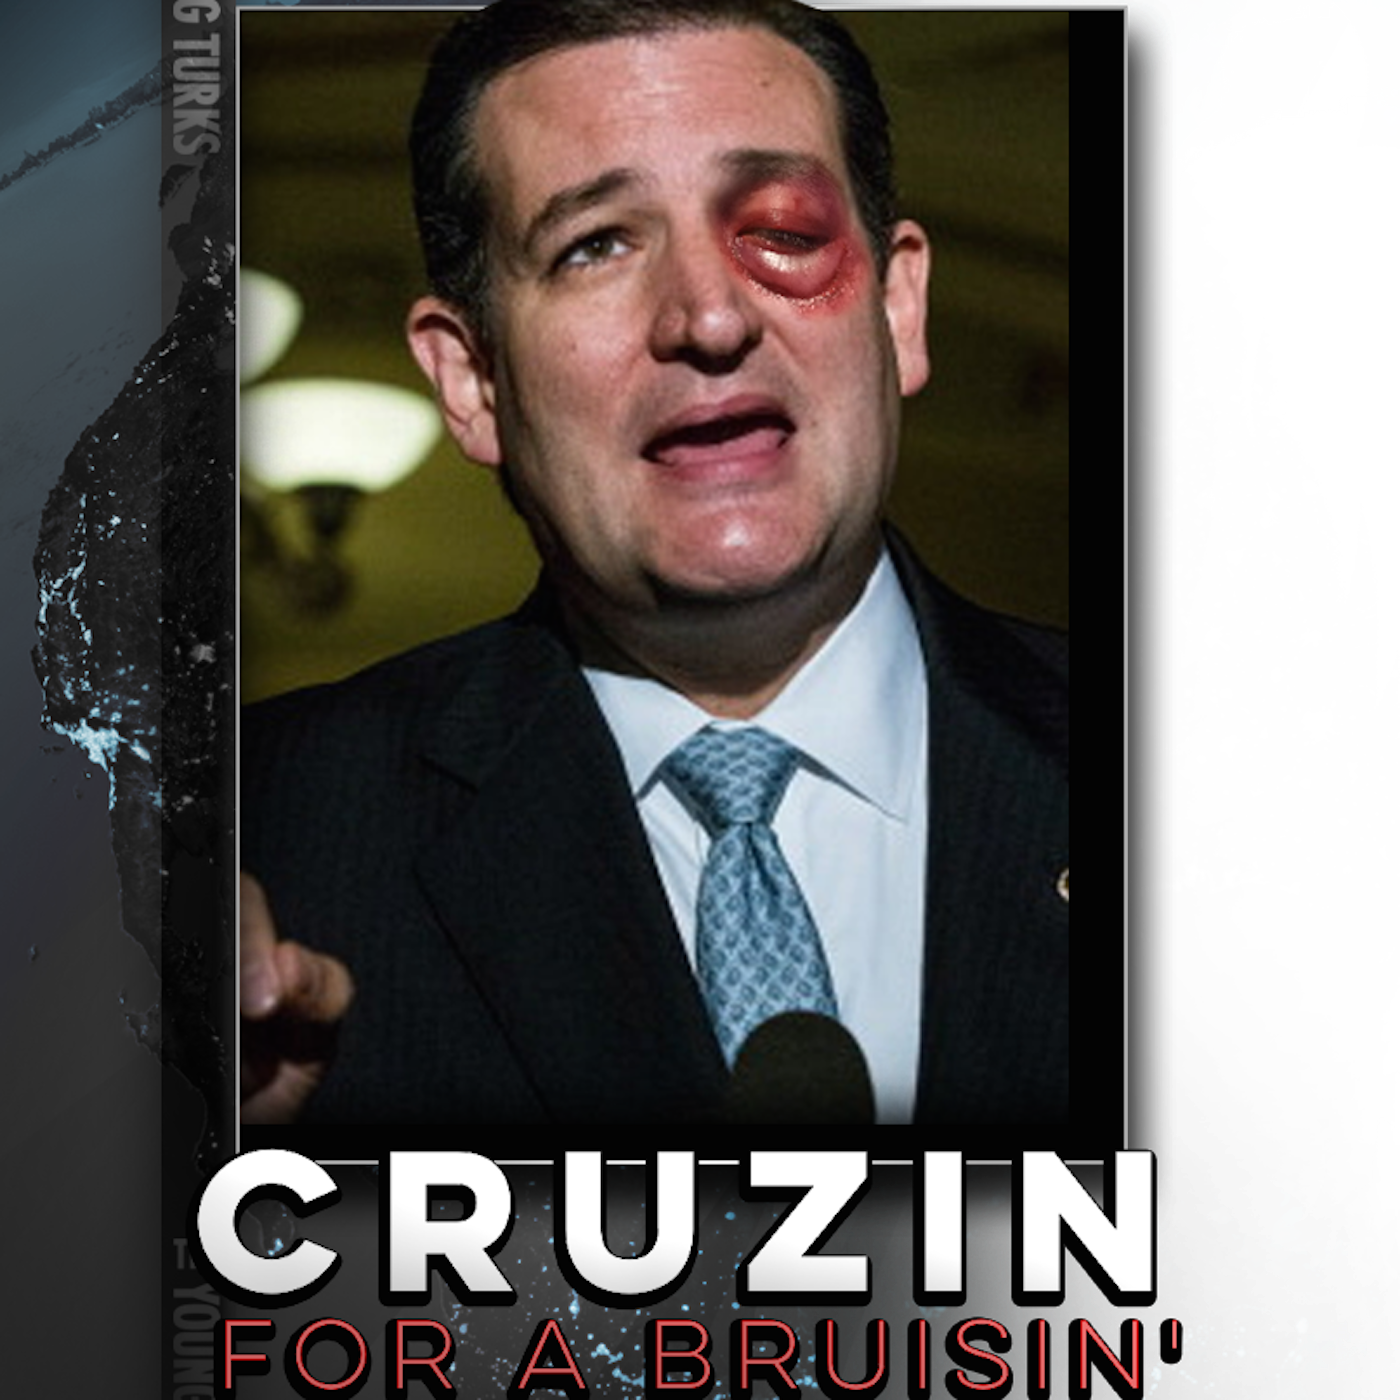 The Young Turks - 3.23.15: Ted Cruz, ISIS, Fappuccino & Marijuana Activist Attacked